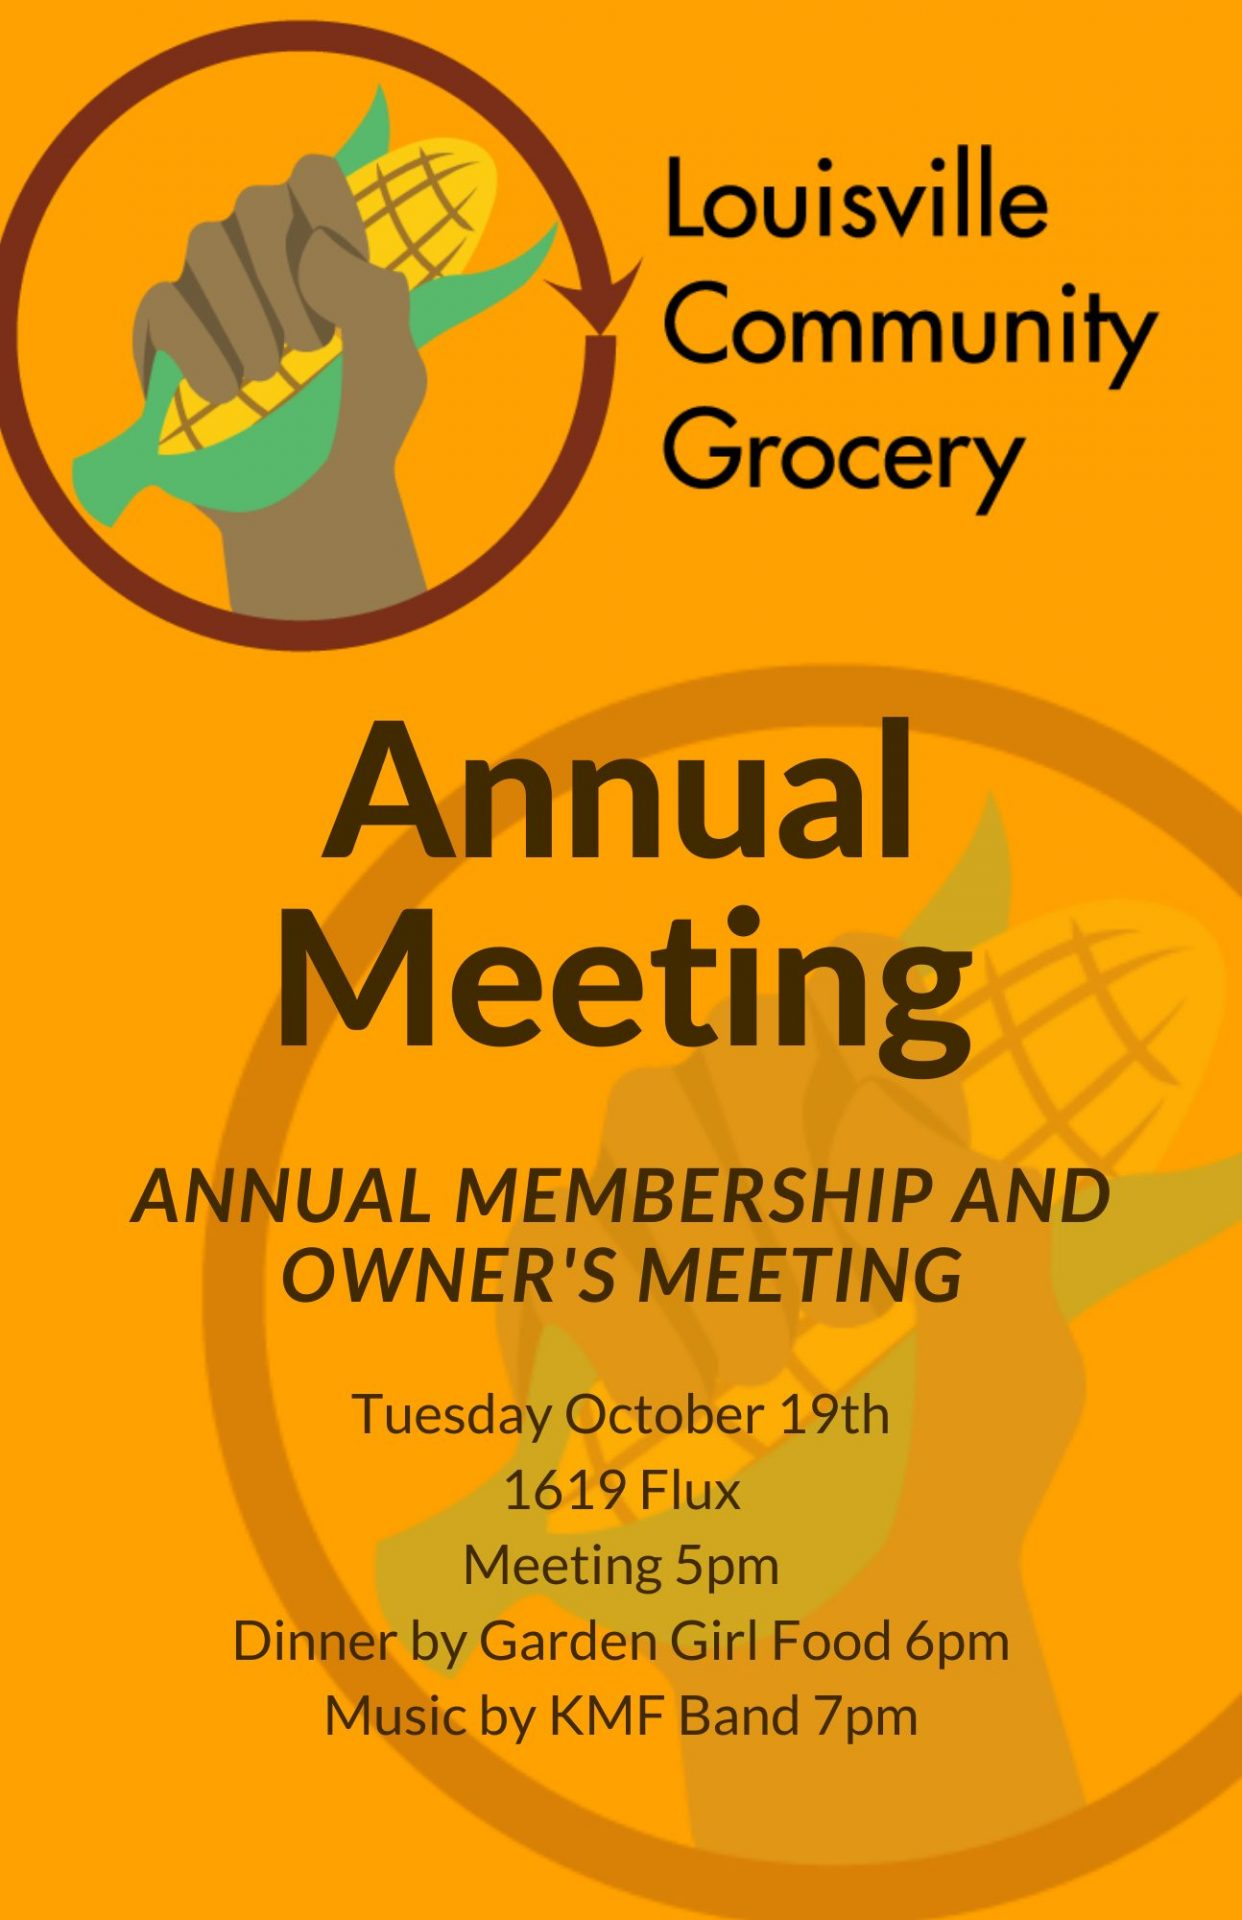 Annual Meeting 2021 image